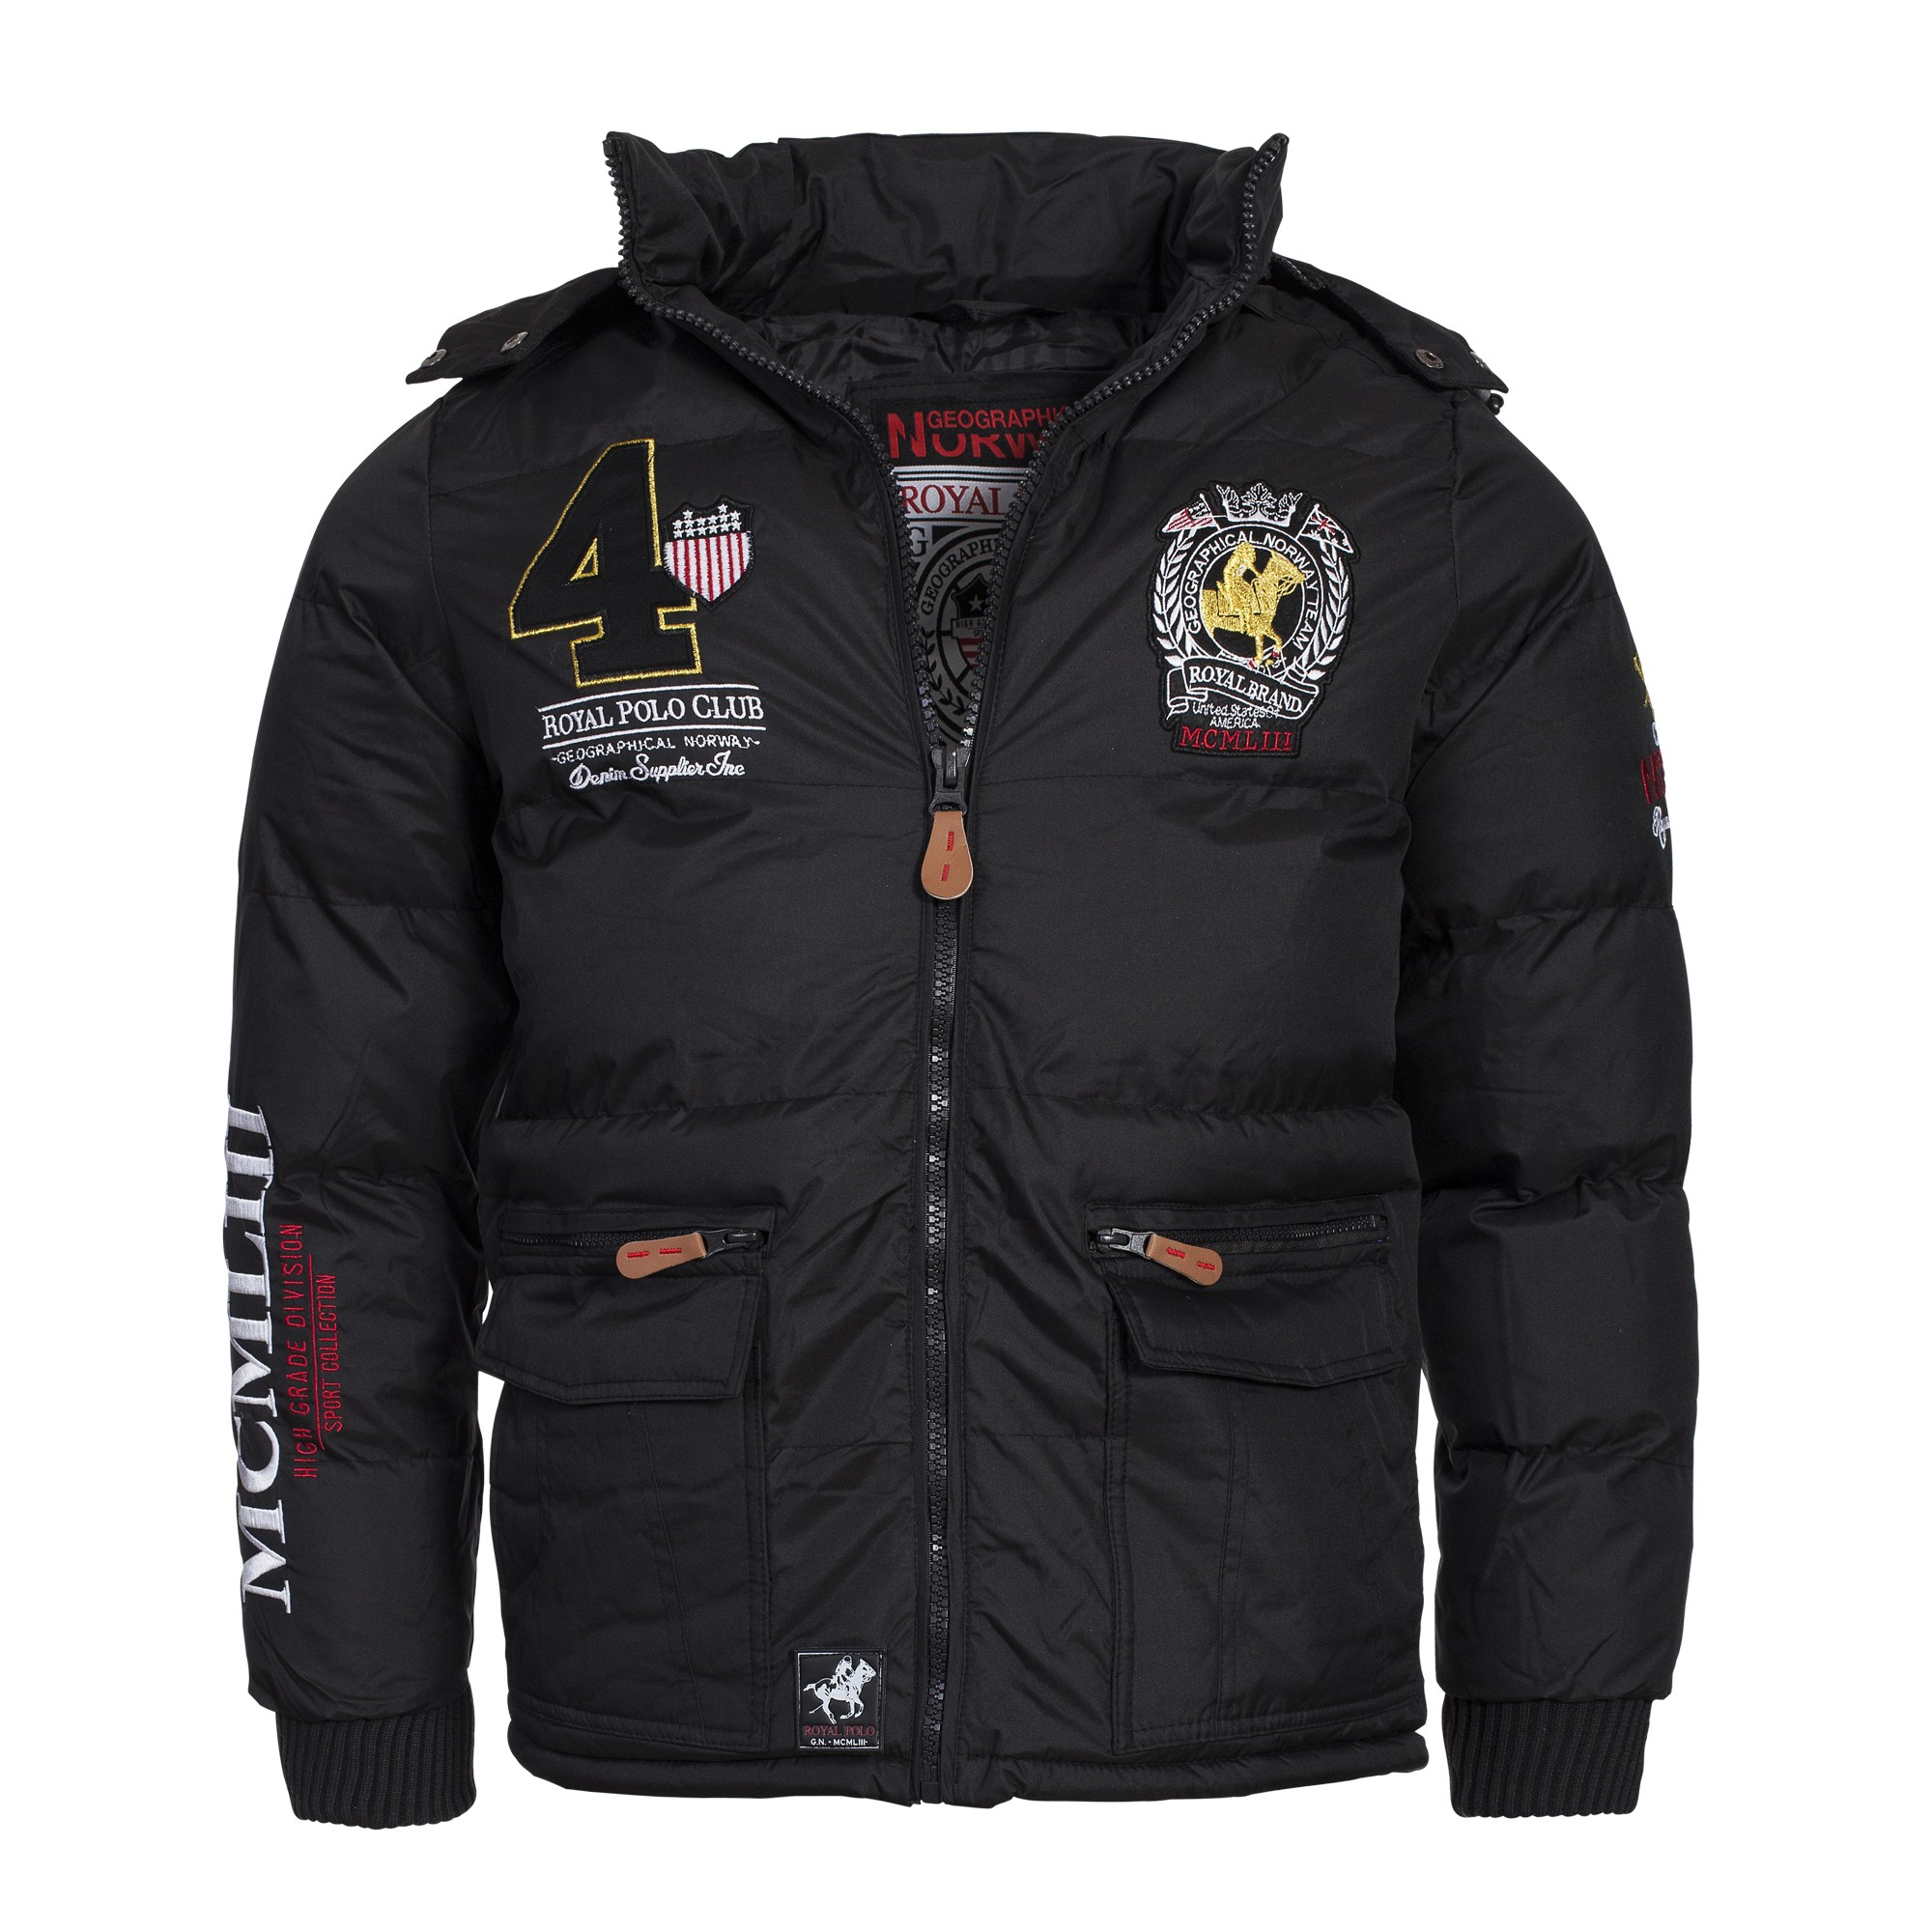 geographical norway cincinatti herren winterjacke jacke parka gr s xxl ebay. Black Bedroom Furniture Sets. Home Design Ideas